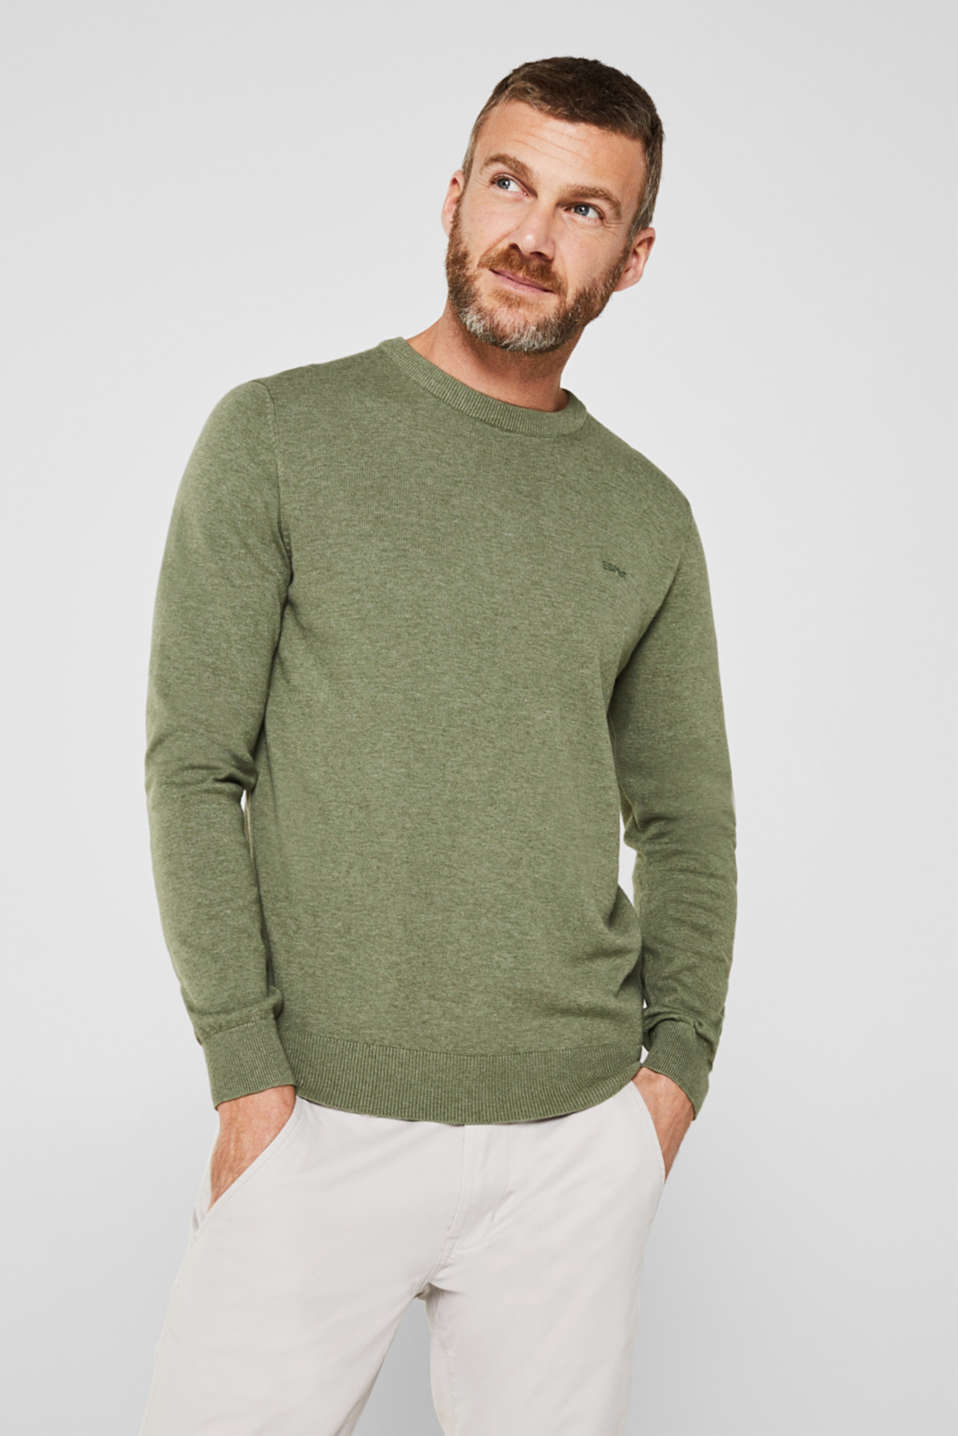 Esprit - Basis-sweater i 100% bomuld